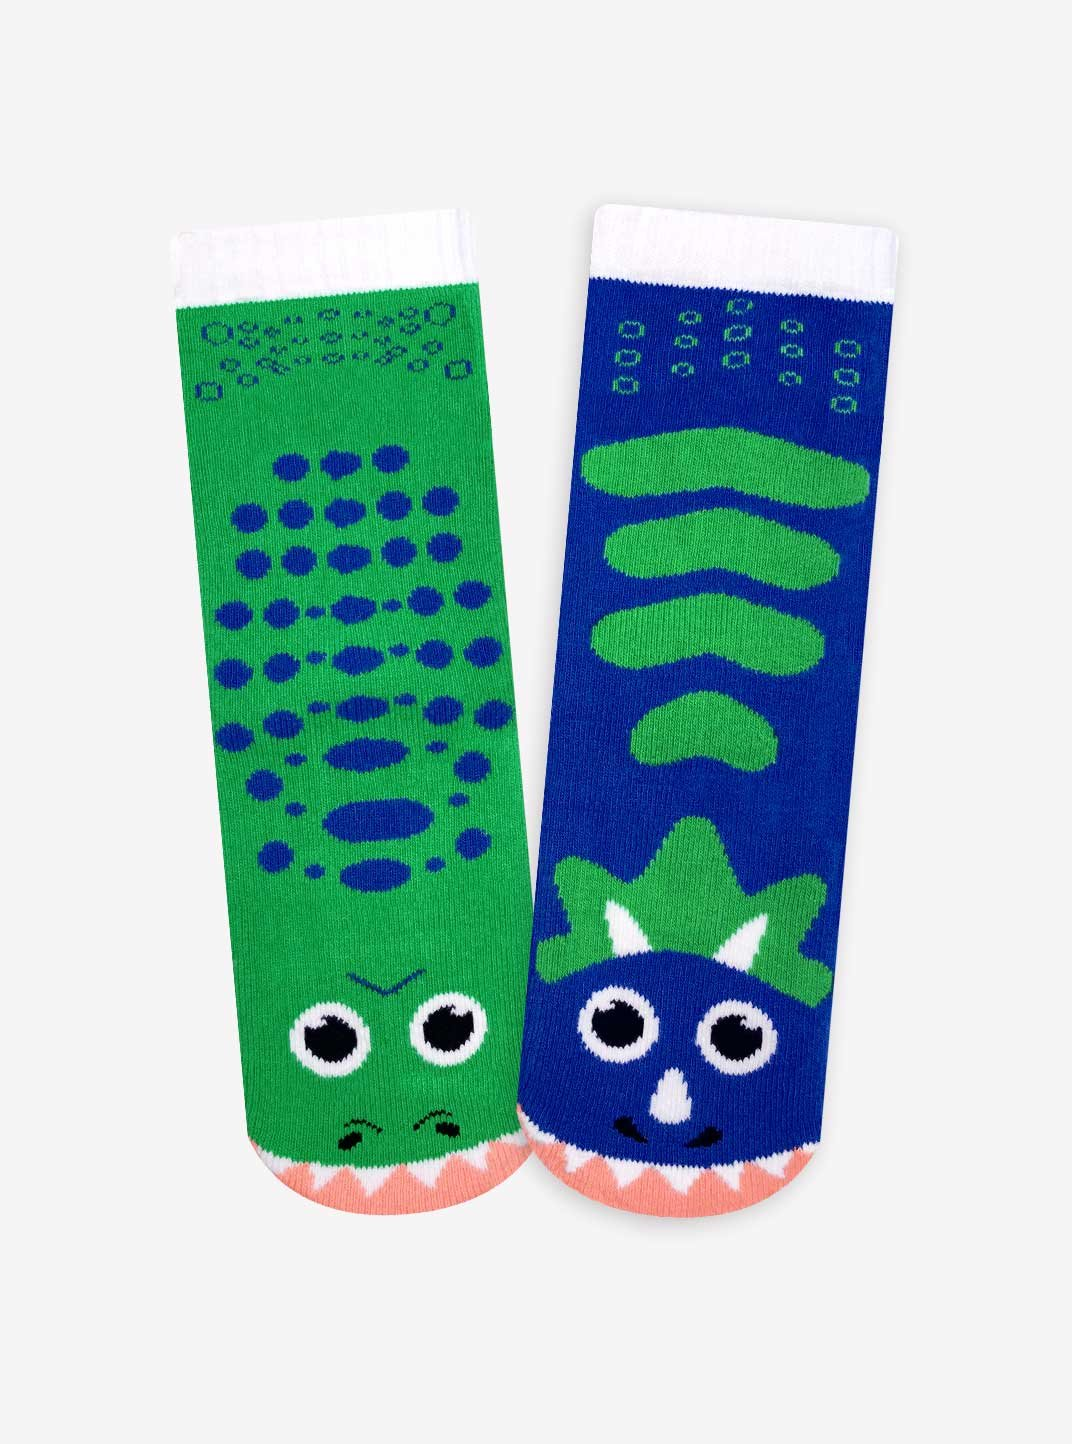 Lion and Zebra, T-Rex and Triceratops, Polar Bear and Penguin - Toddler Sock Set - Mighty Mates Mismatched Friends 3-Pack by Pals Socks (Image #5)